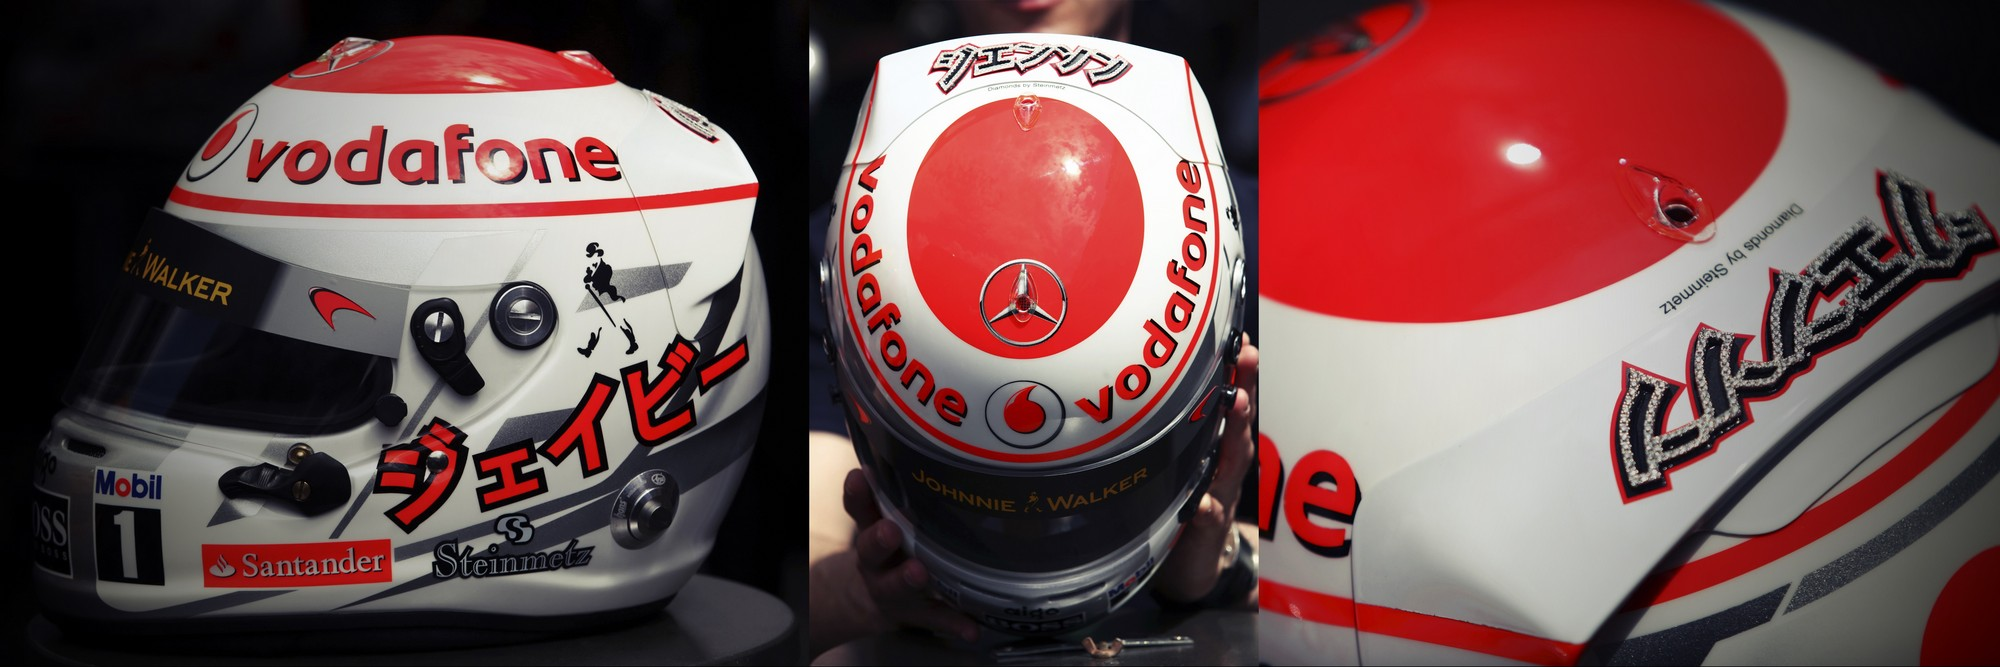 Шлем Дженсона Баттона на Гран-При Монако 2011 | 2011 Monaco Grand Prix helmet of Jenson Button